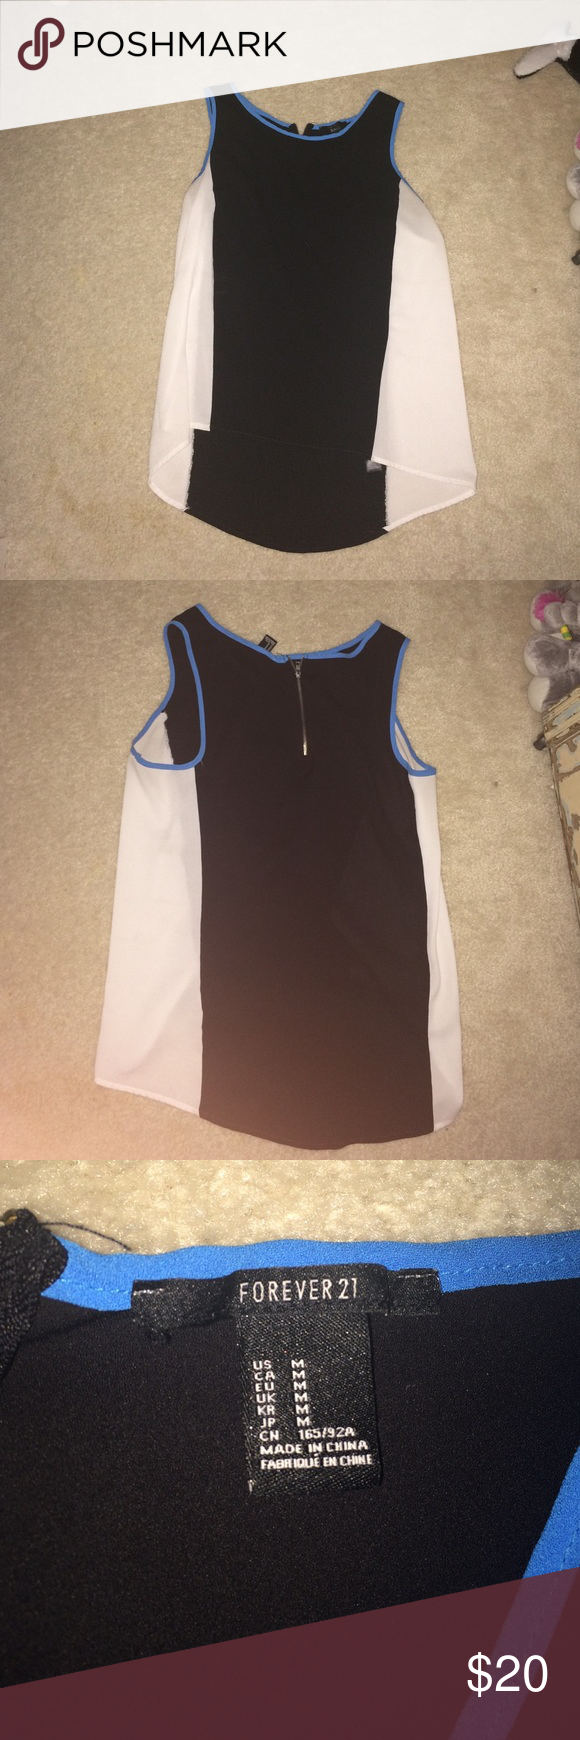 """Black, White, and Blue Tank This high low tank from Forever 21 is perfect for dressing up or dressing down! Soft and adorable. Worn maybe two or three times, in new, excellent condition. I'm 5'4"""" and the front comes to the hem of my jeans and in the back goes to the middle of my butt. ❤️ OPEN TO TRADES ❤️ Forever 21 Tops Blouses"""